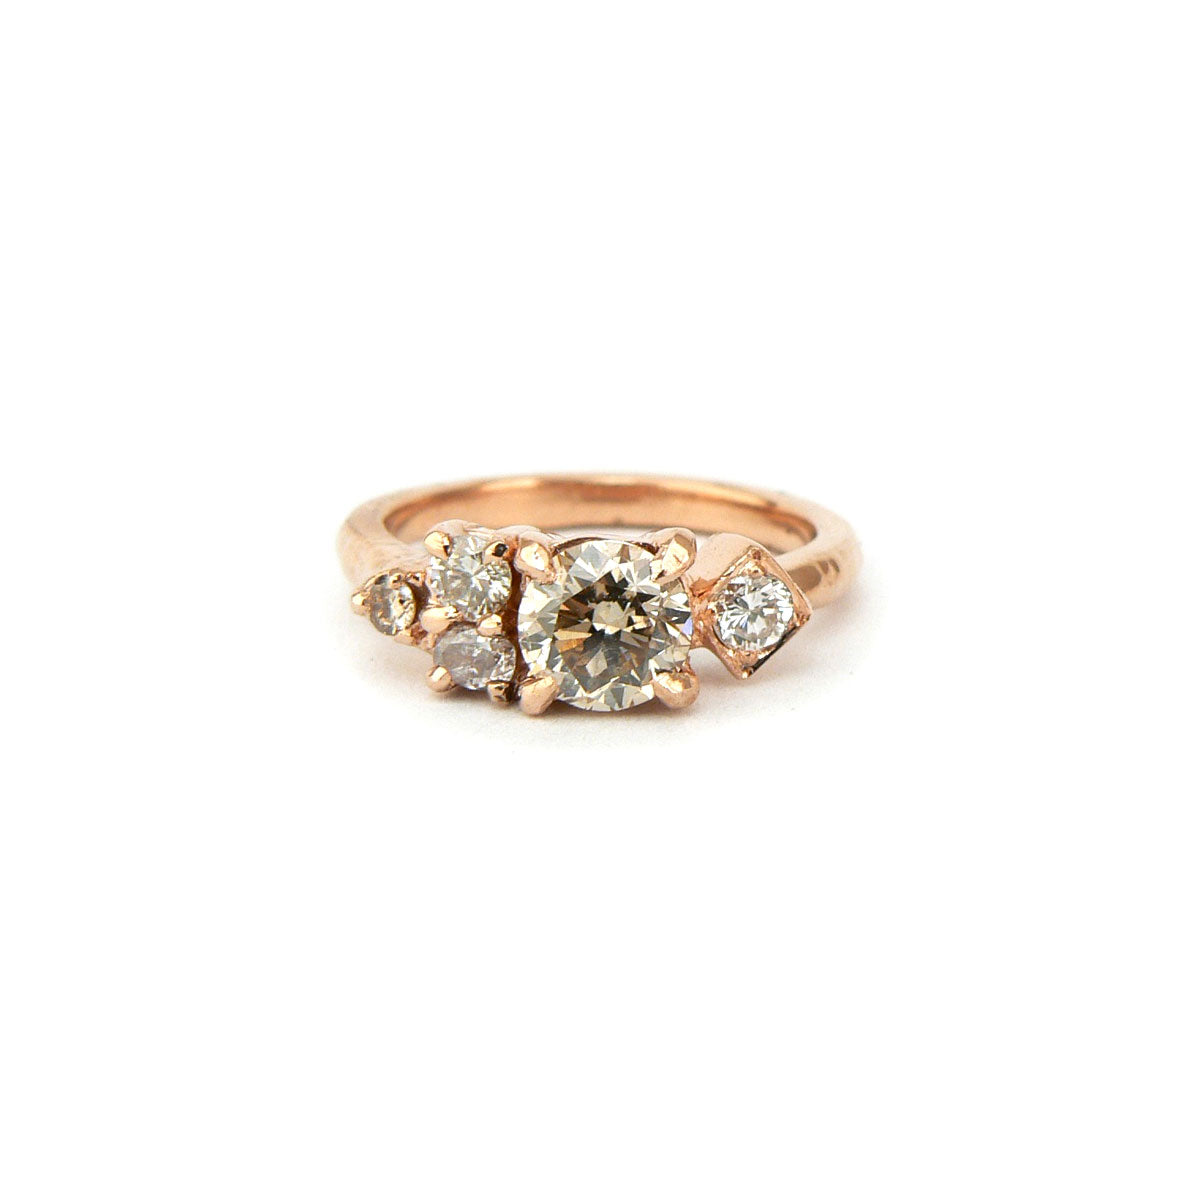 Champagne diamond cluster engagement ring